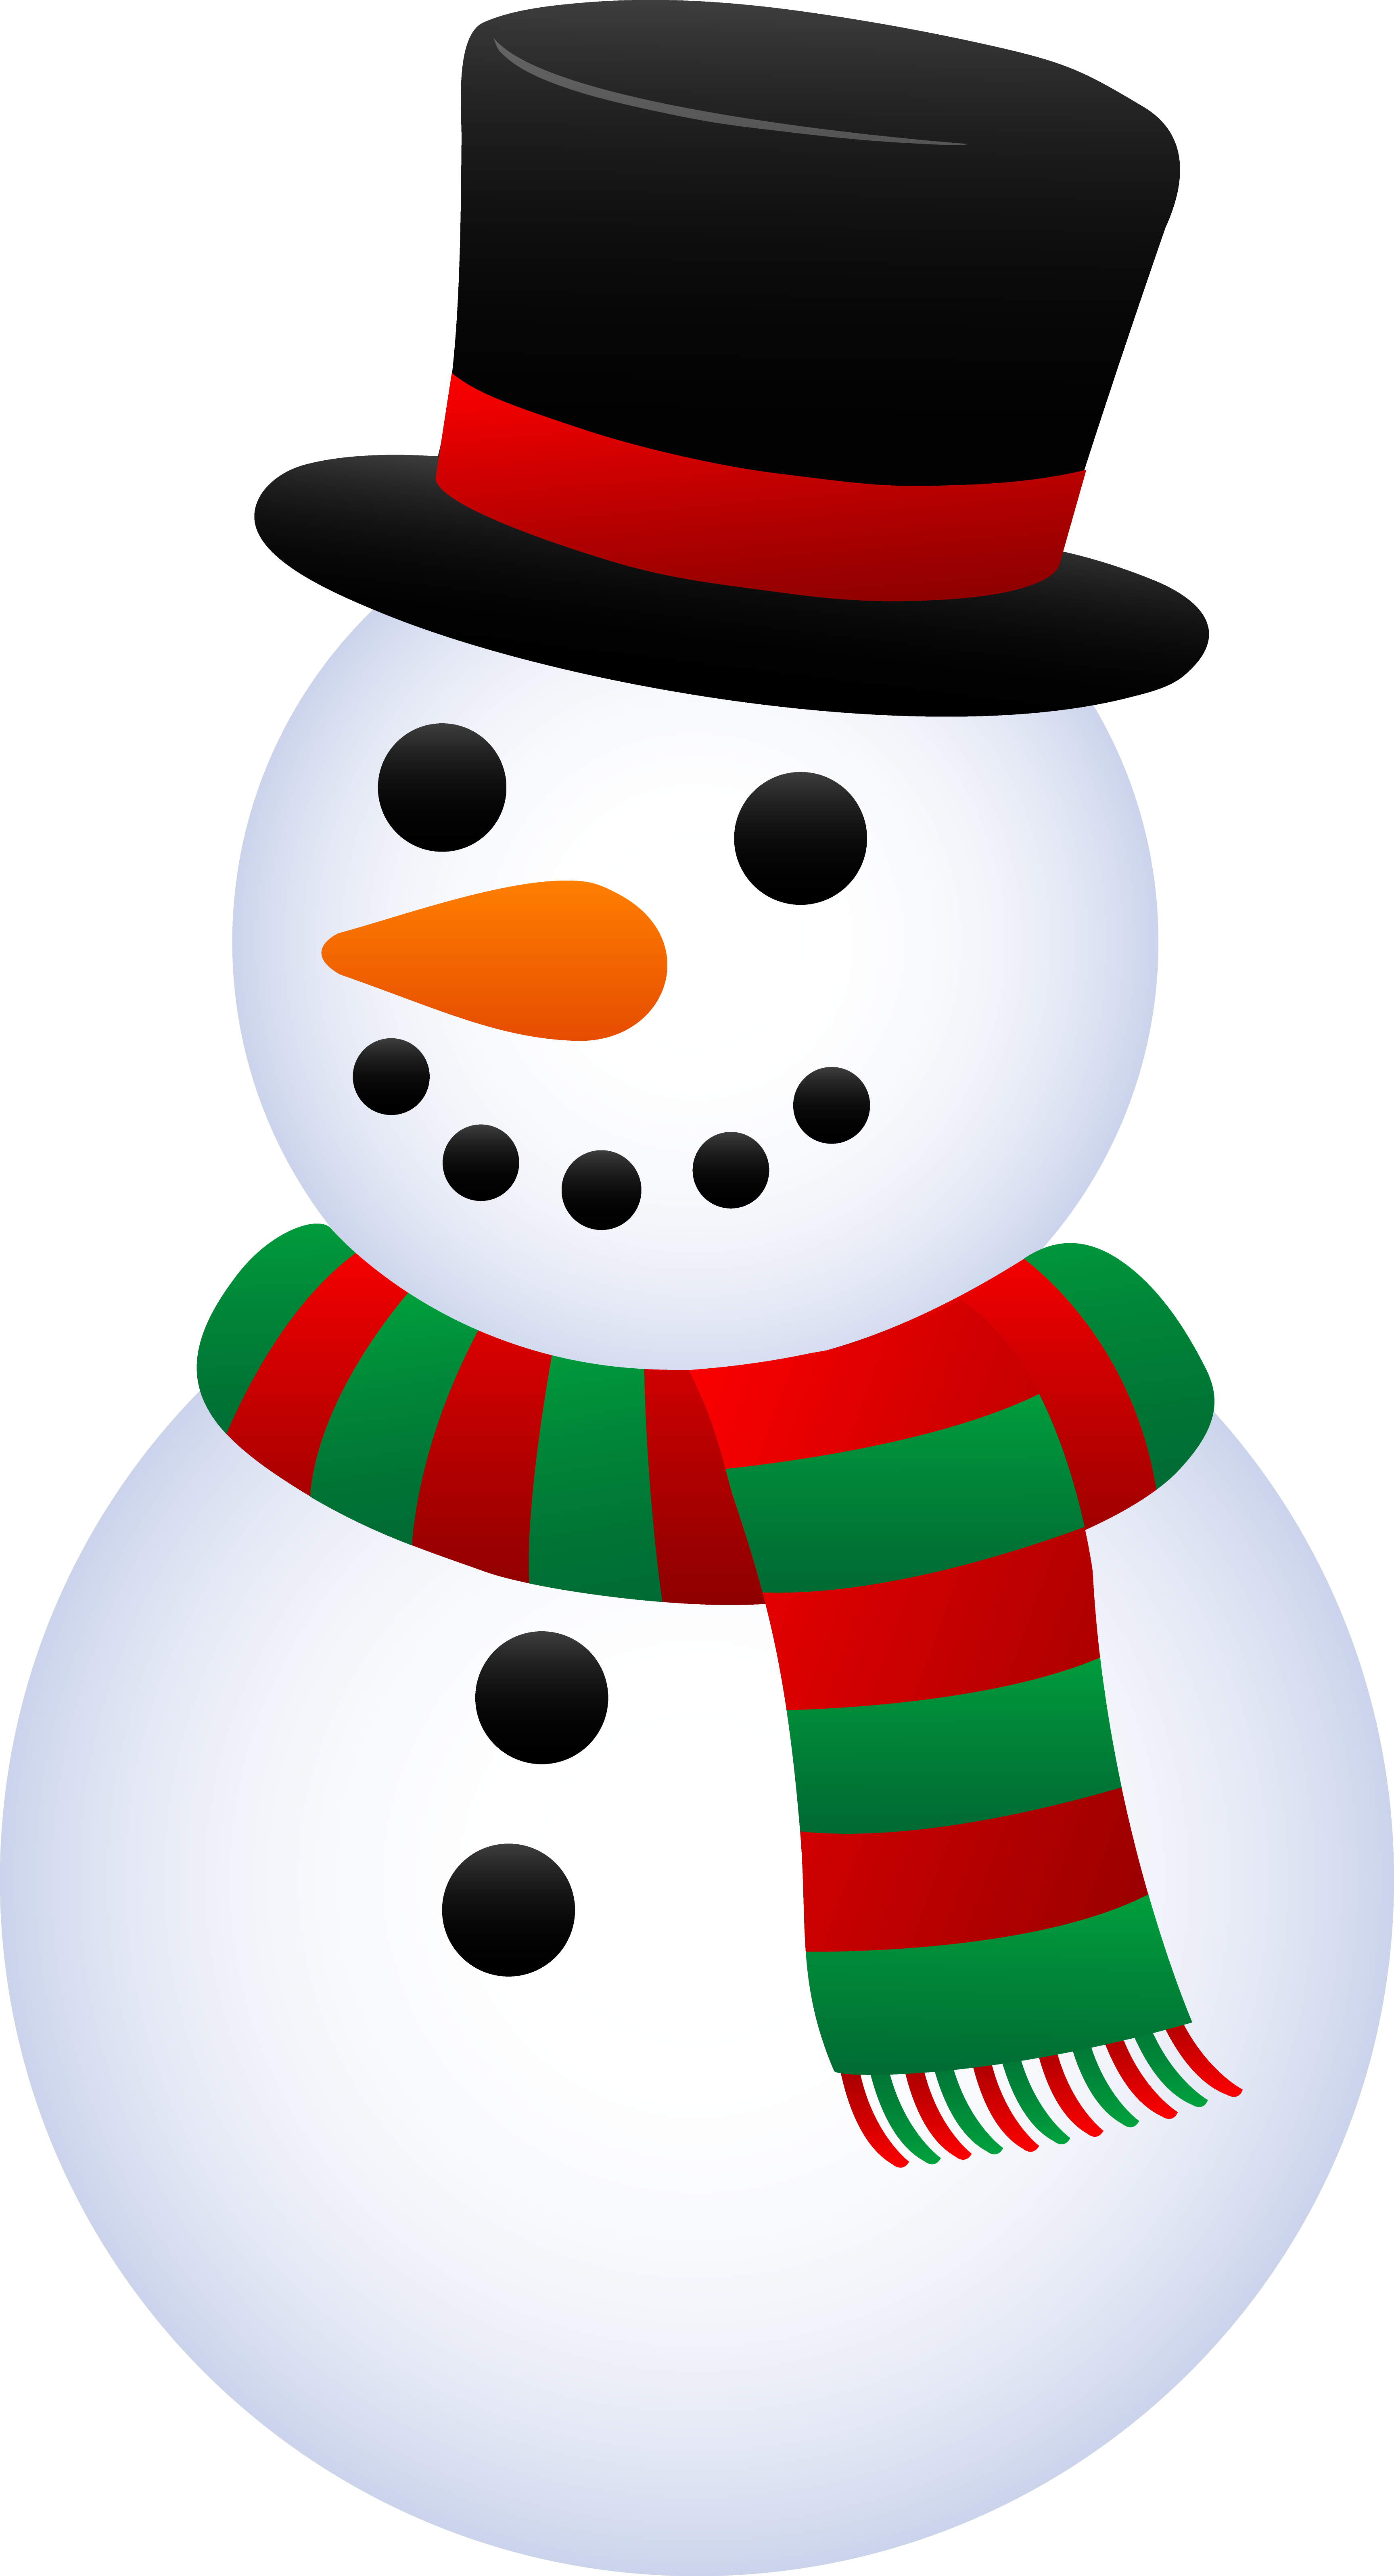 Snowma clipart graphic freeuse library Snowman Clipart | Free Download Clip Art | Free Clip Art ... graphic freeuse library